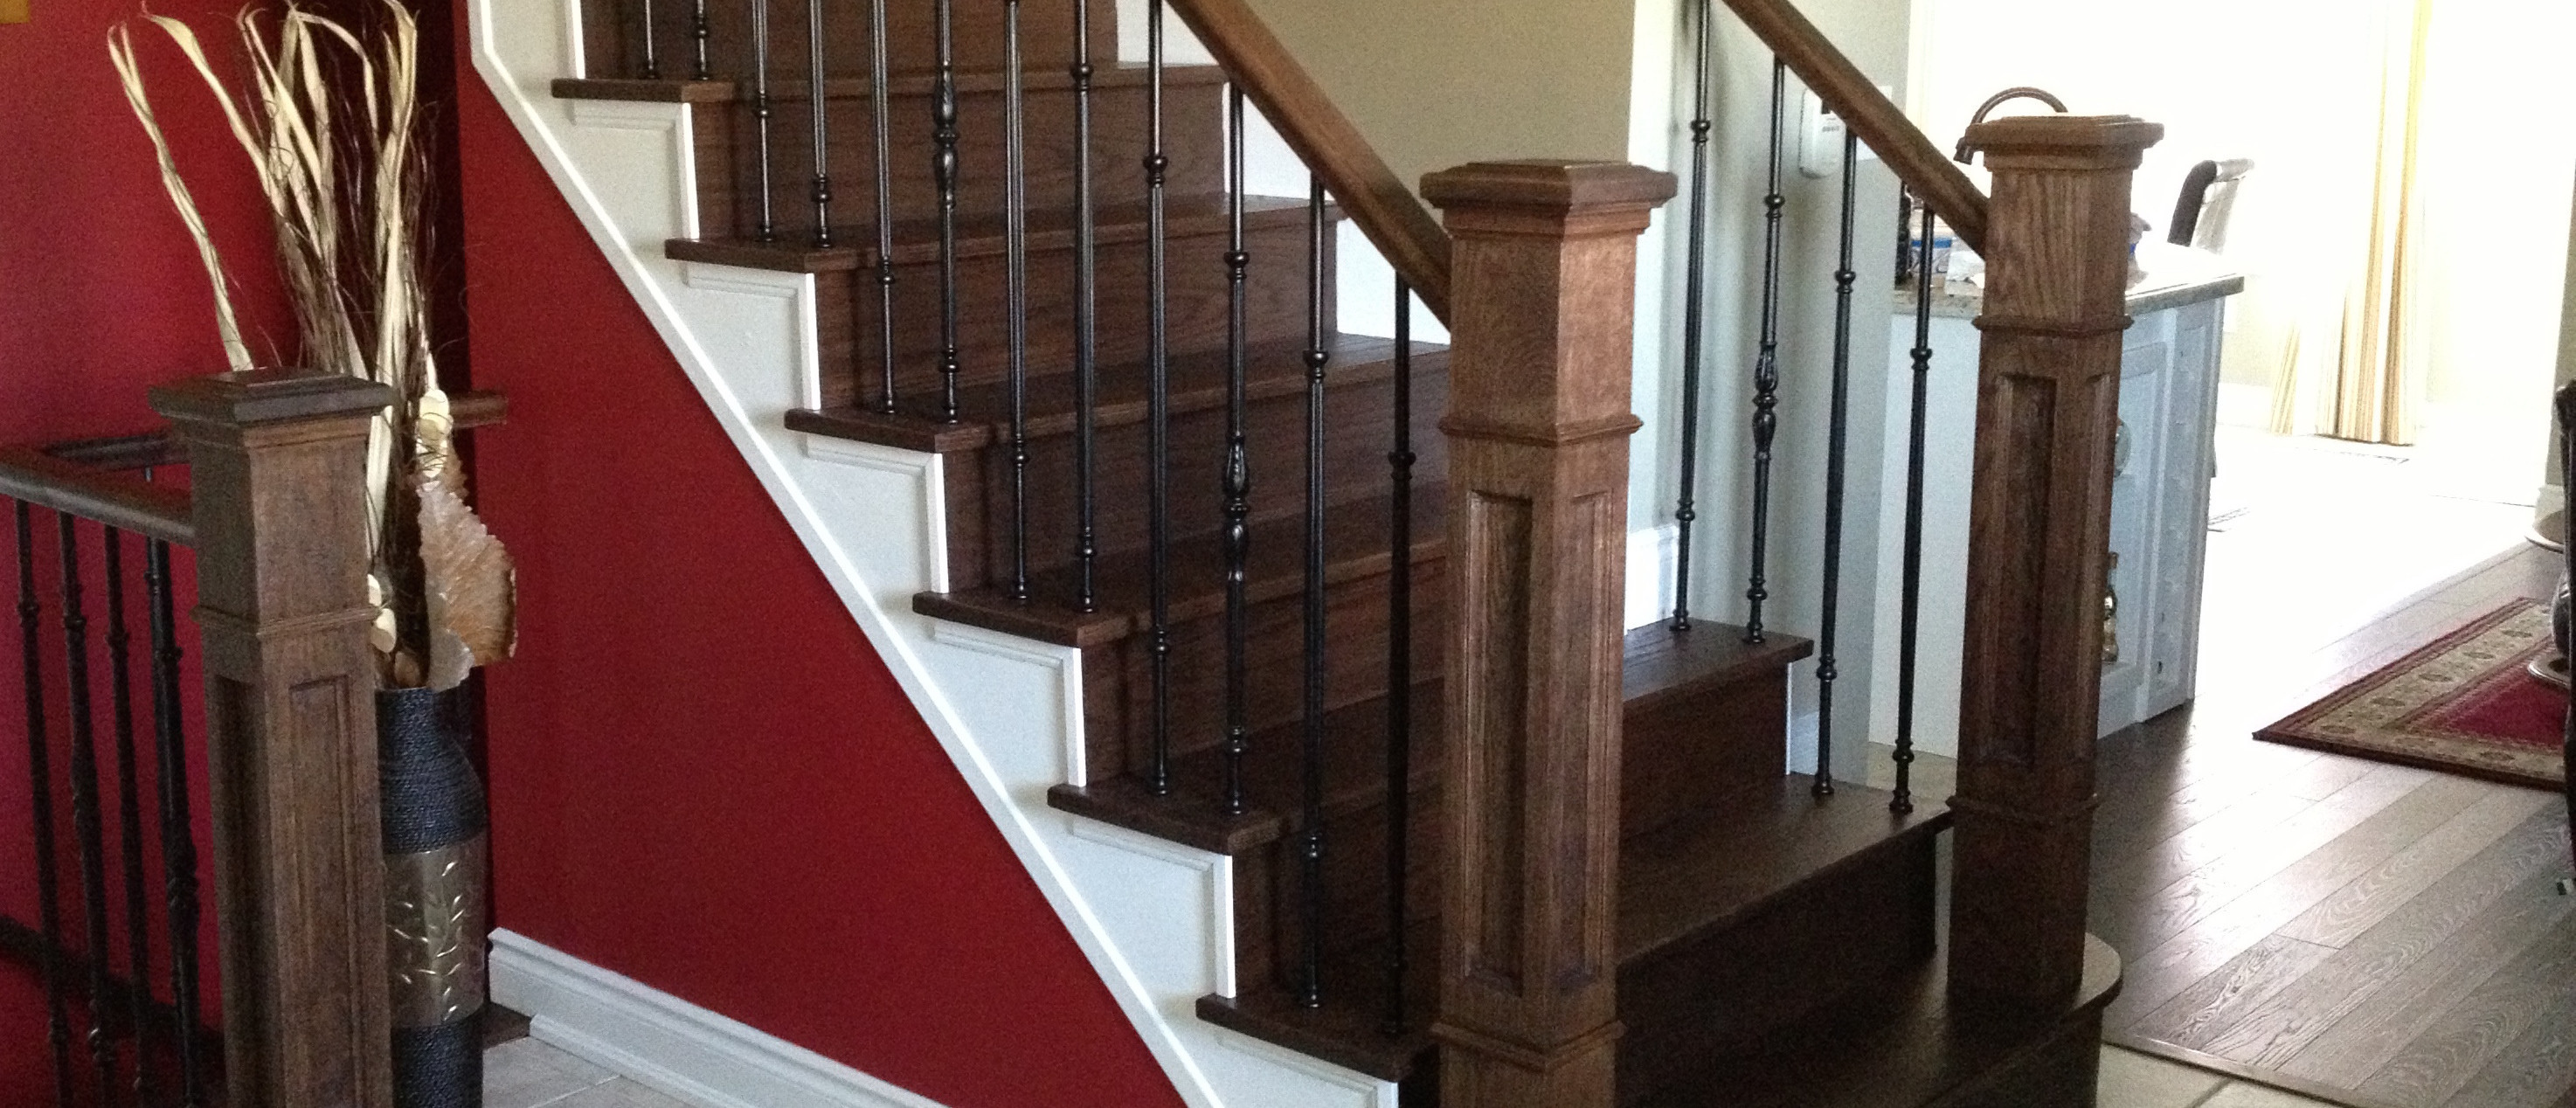 hardwood flooring lincoln ne of 16 elegant my pillow store lincoln ne beautiful pillow design inside my pillow store lincoln ne beautiful what to look for in a quality railing manufacturer